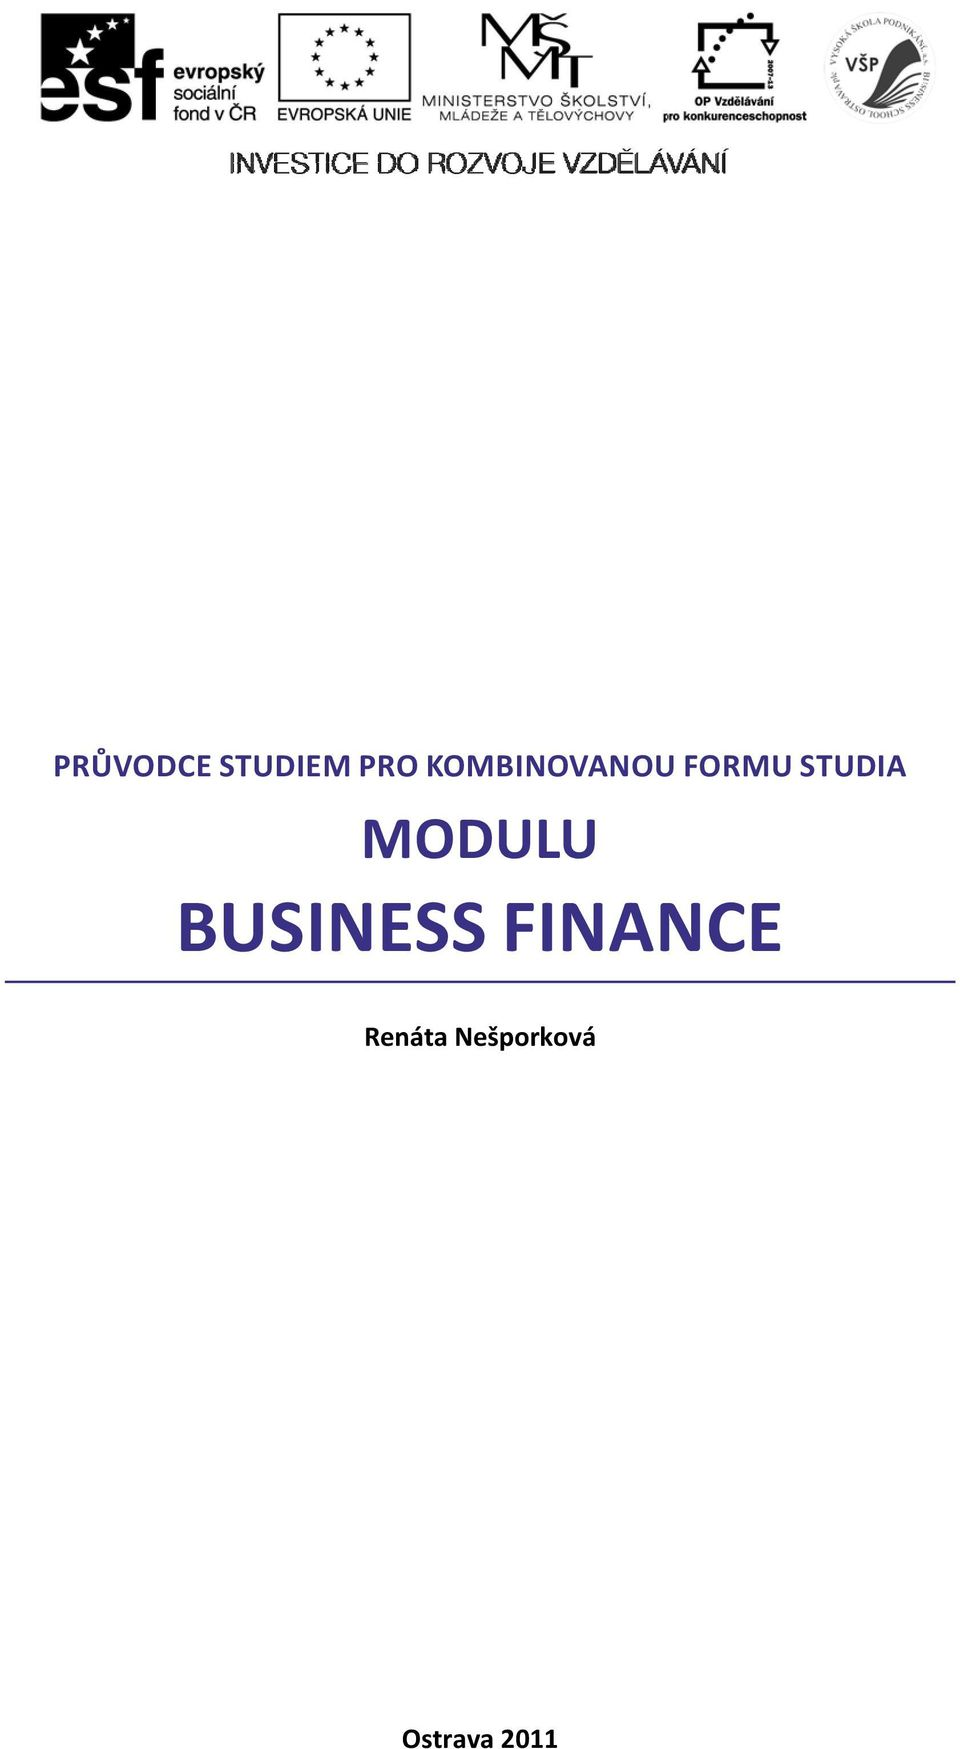 MODULU BUSINESS FINANCE